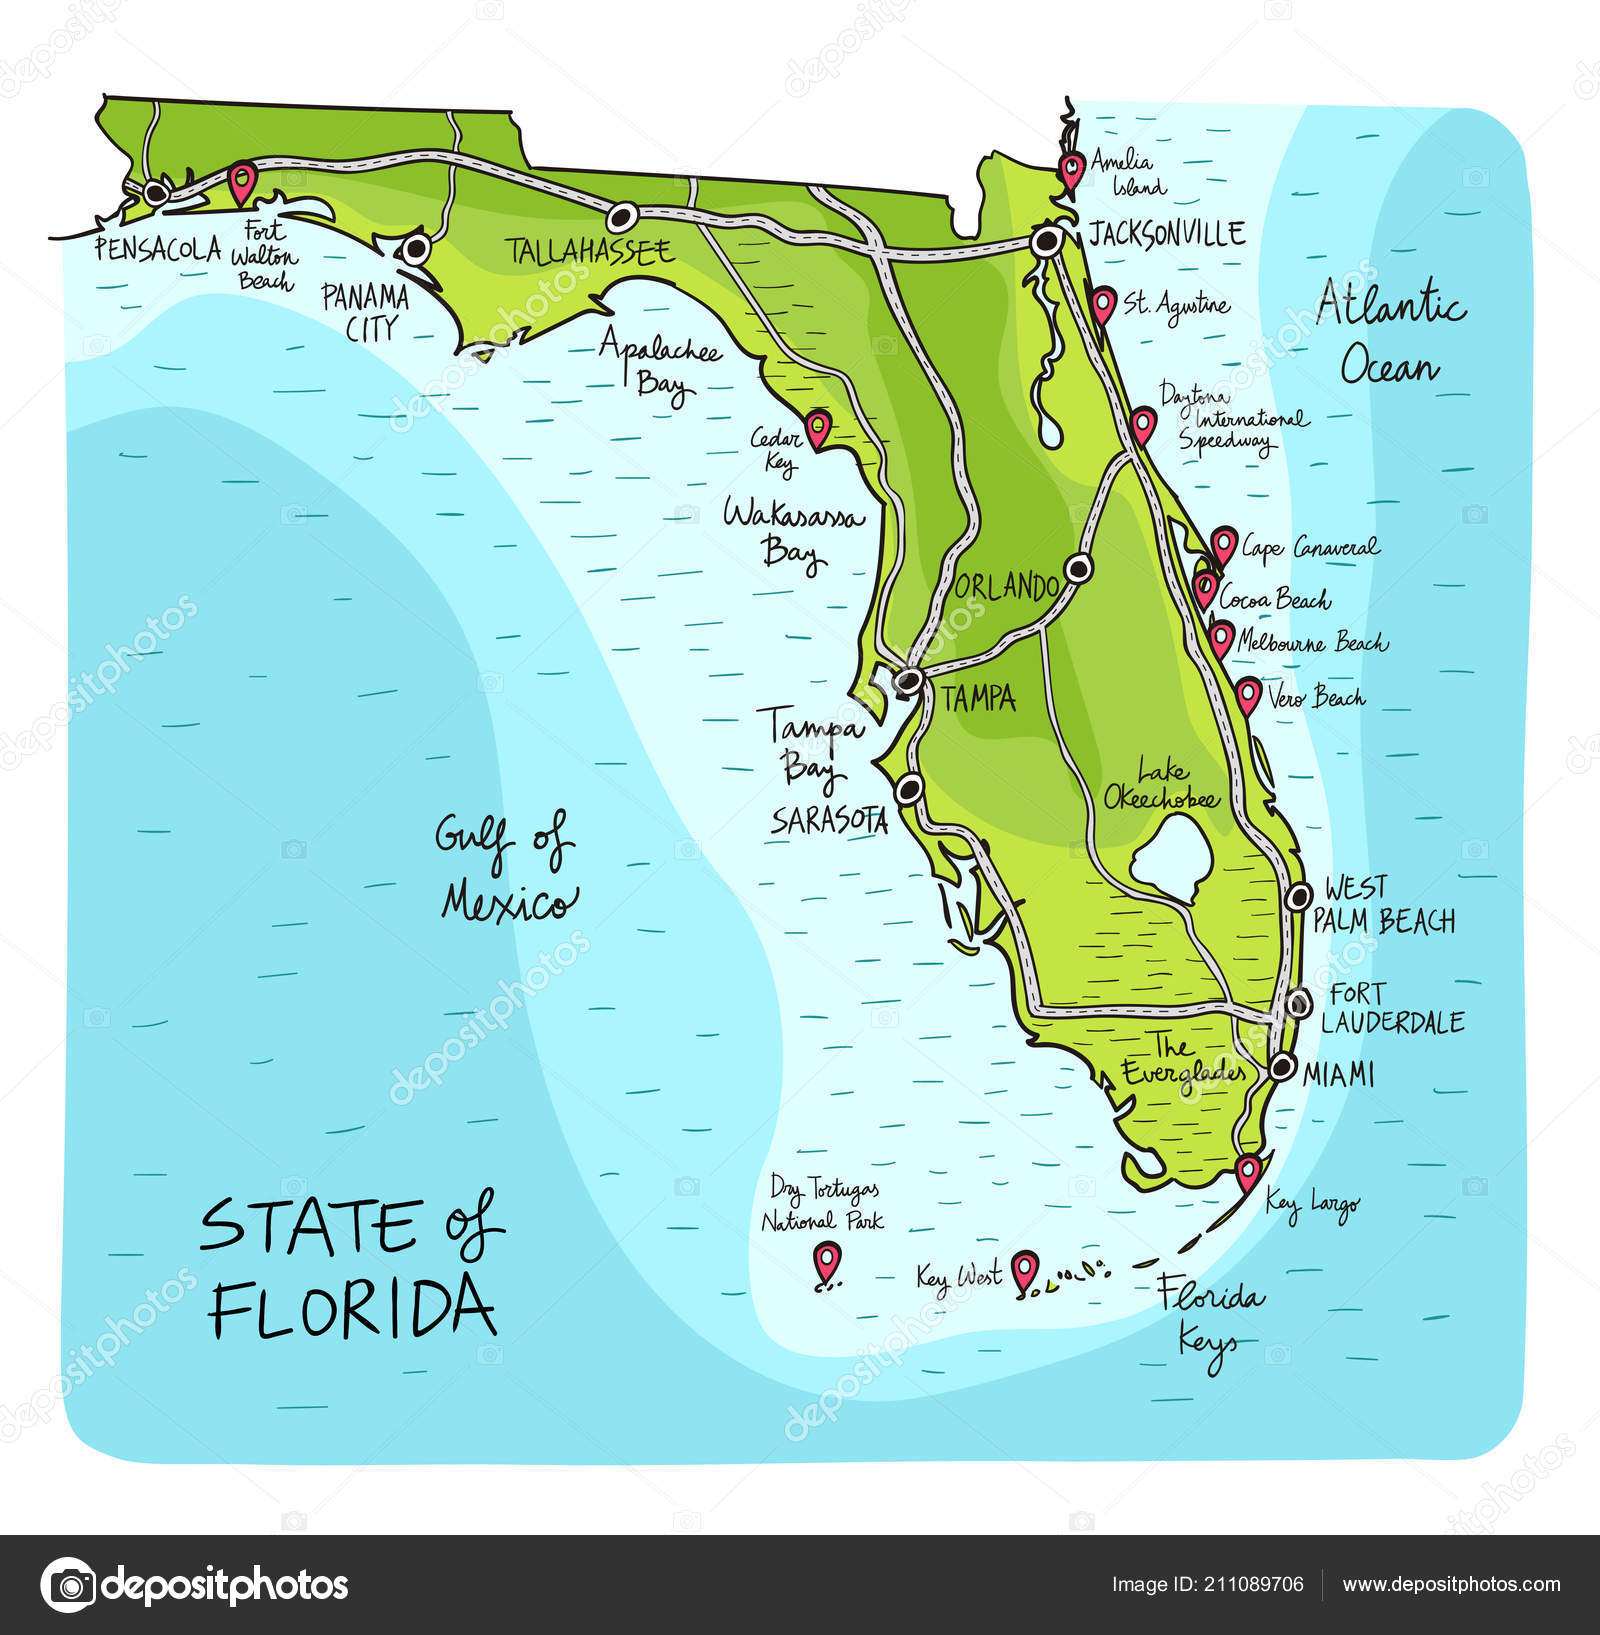 Map Of The State Of Florida.Hand Drawn Map State Florida Main Cities Points Interest Colorful